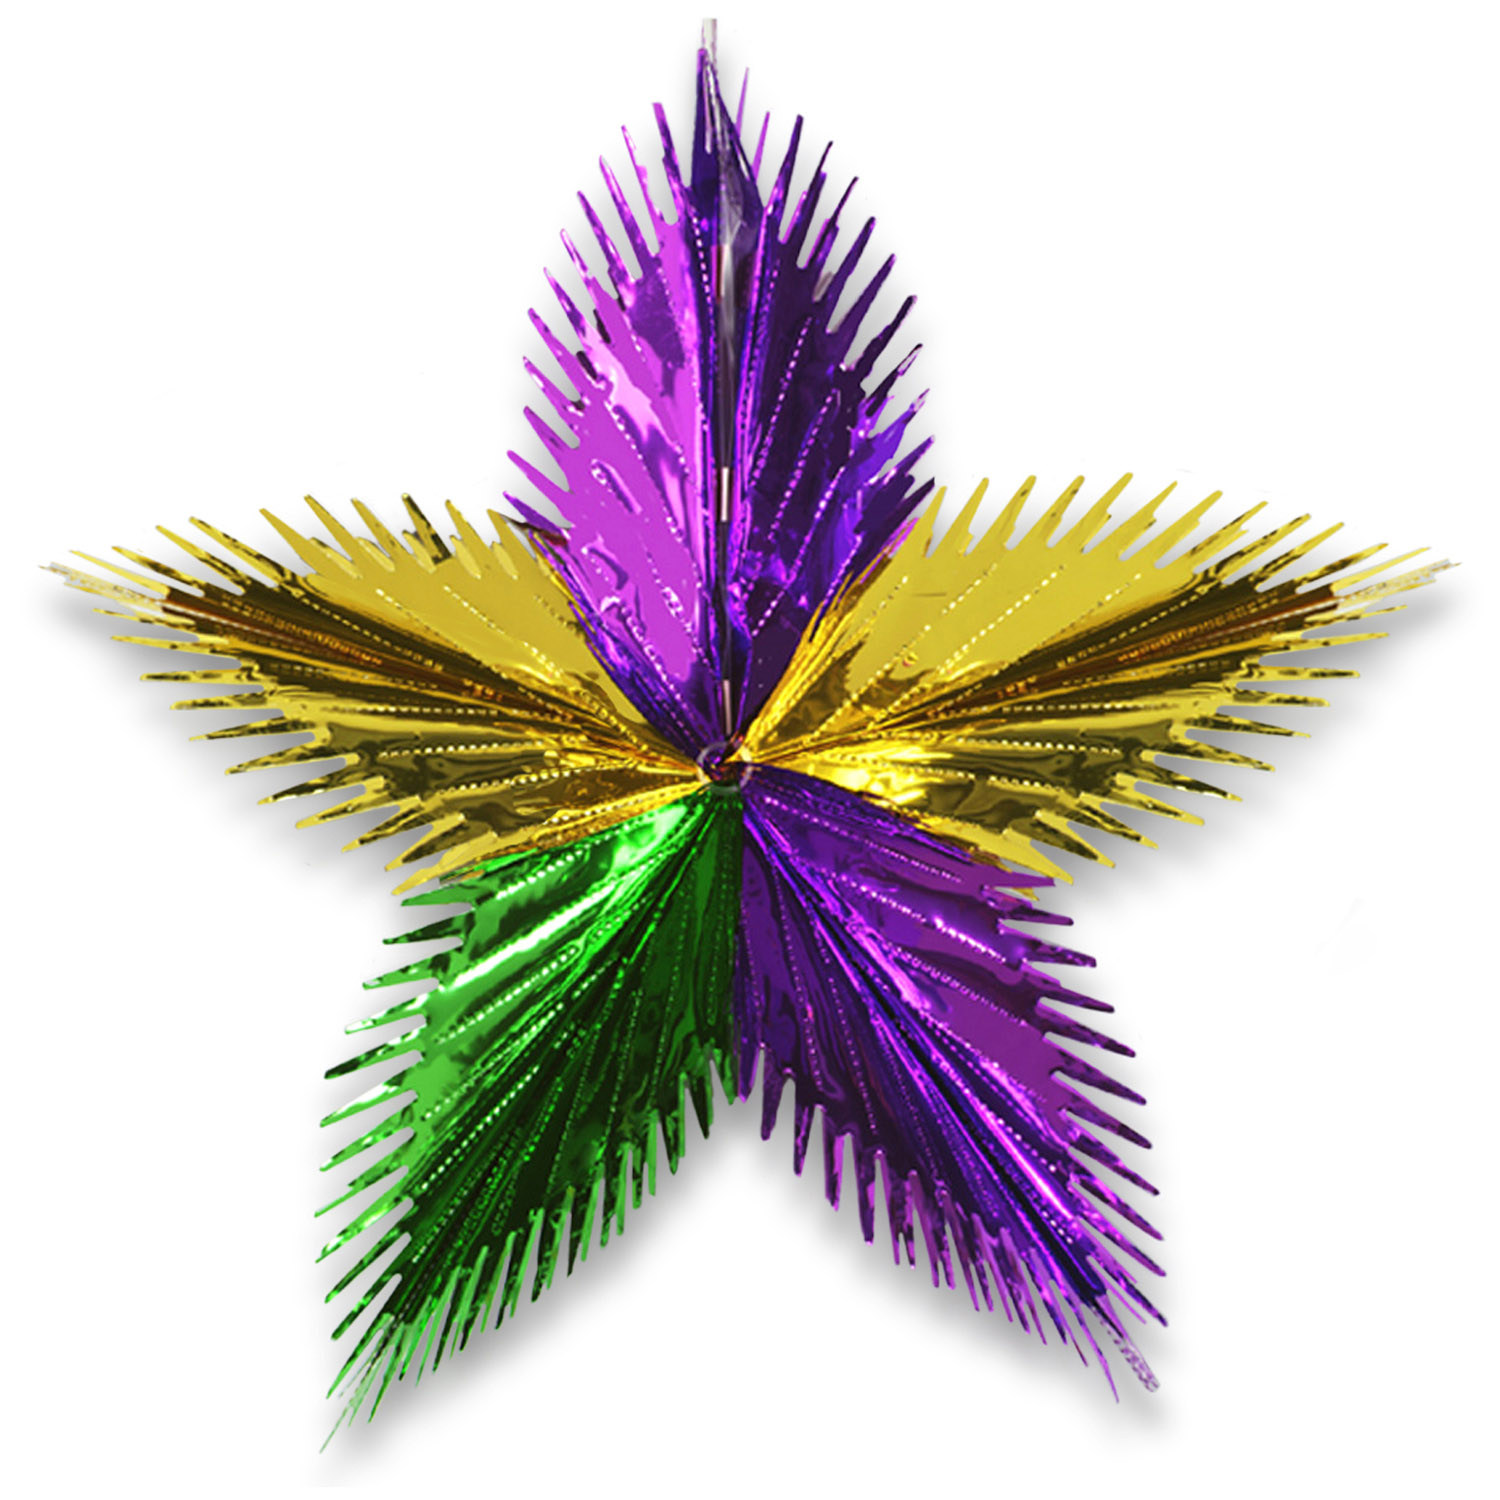 "24"" Leaf Starburst (Pack of 12) Leaf Starburst, mardi gras, decoration, purple, gold, green, wholesale, inexpensive, bulk"